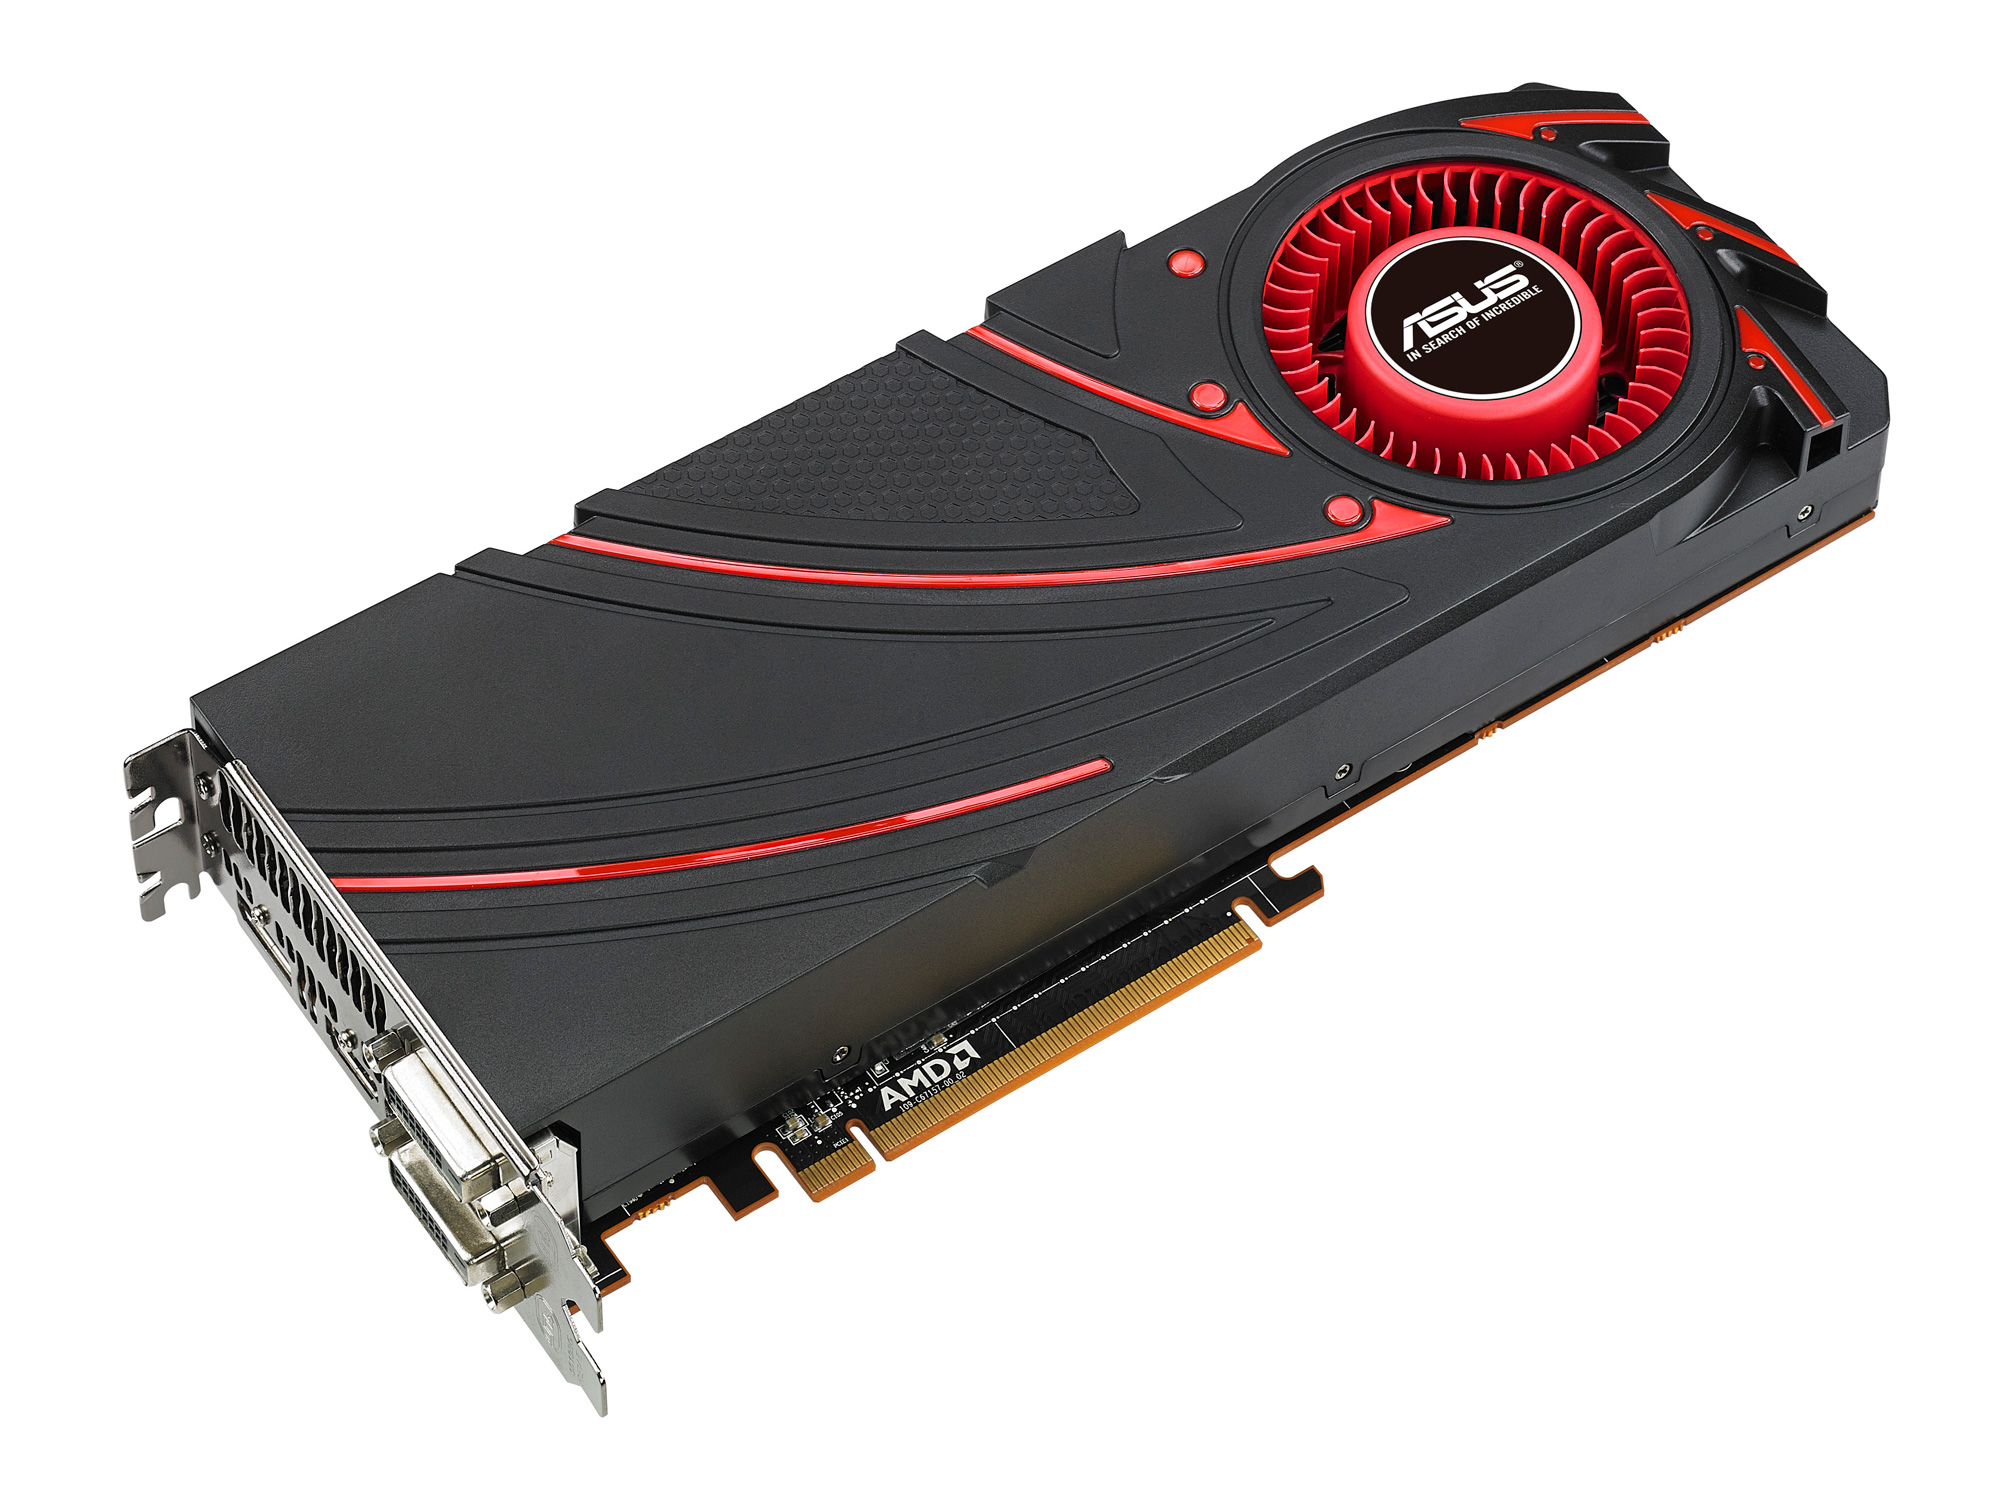 ASUS R9 290X Graphics Card Launched Republic Of Gamers